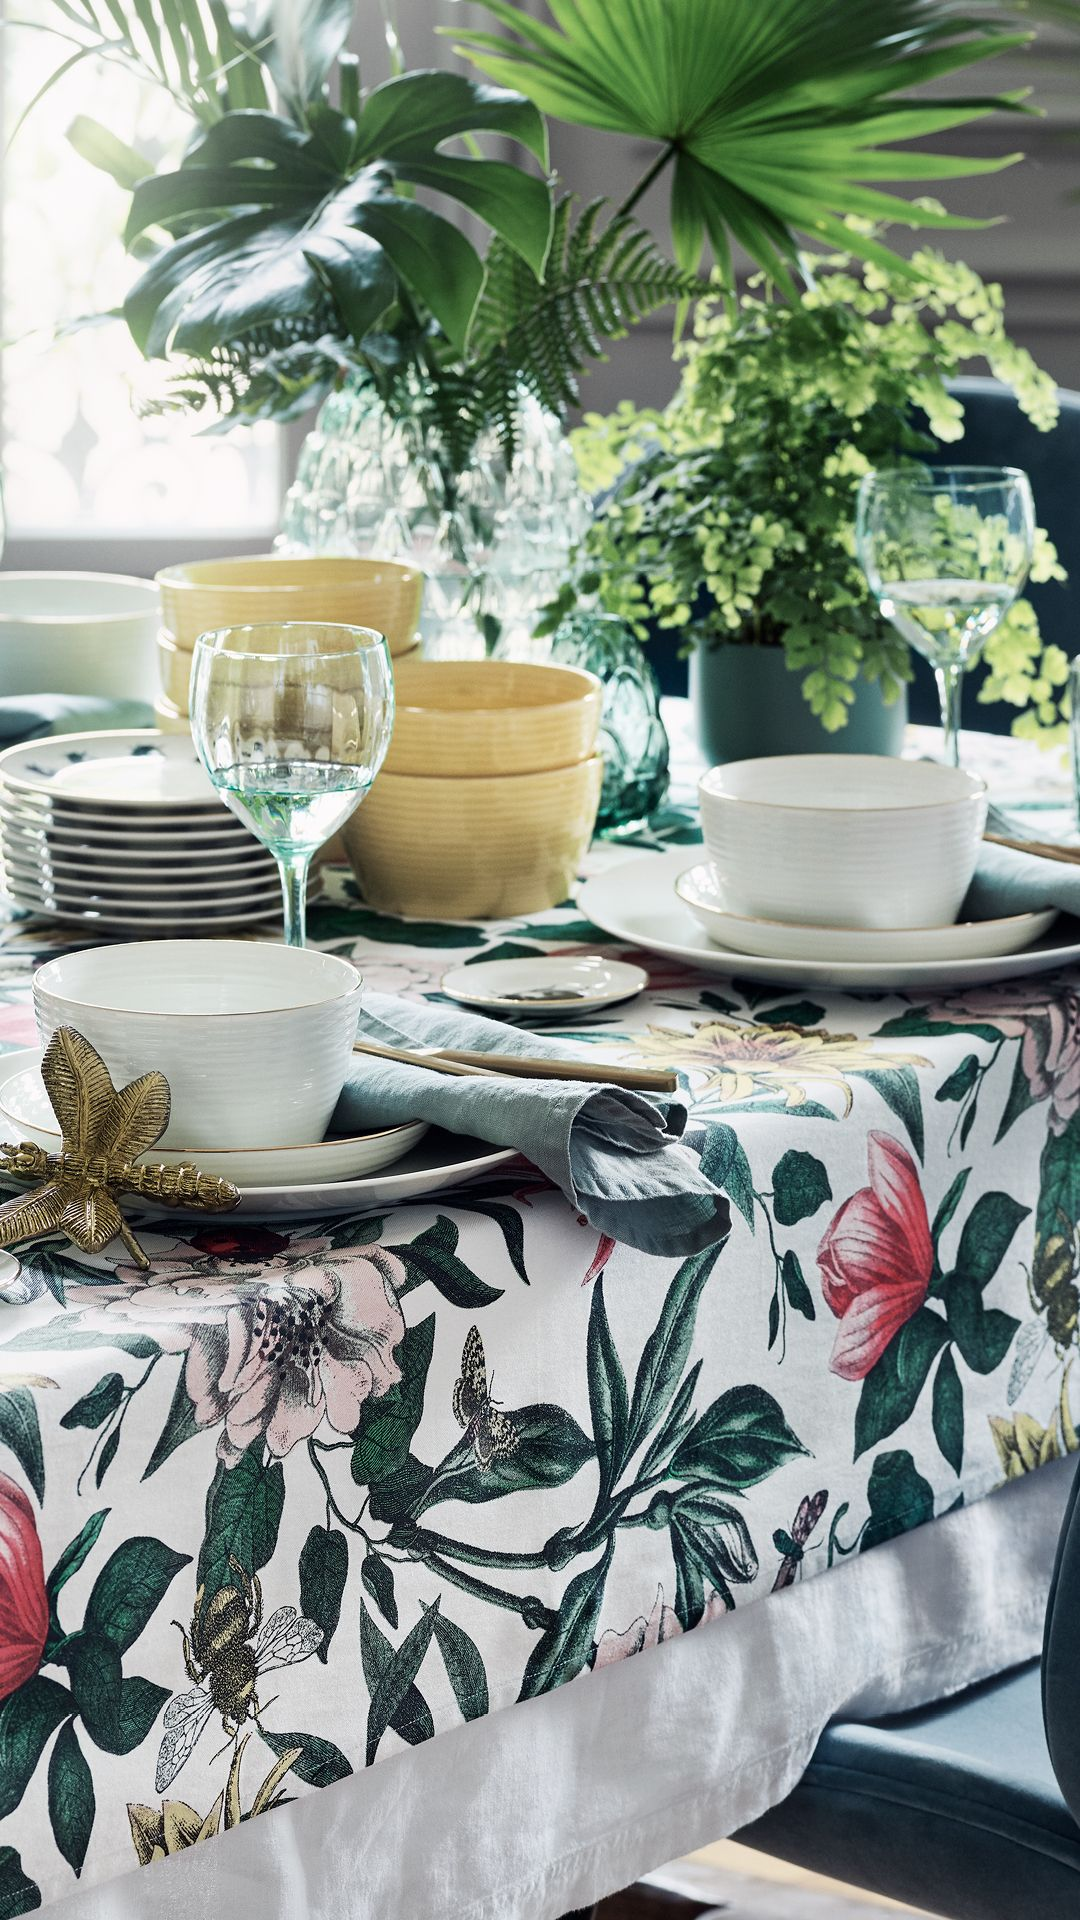 H M Home Lovely Floral Table Setting With A Printed Table Cloth